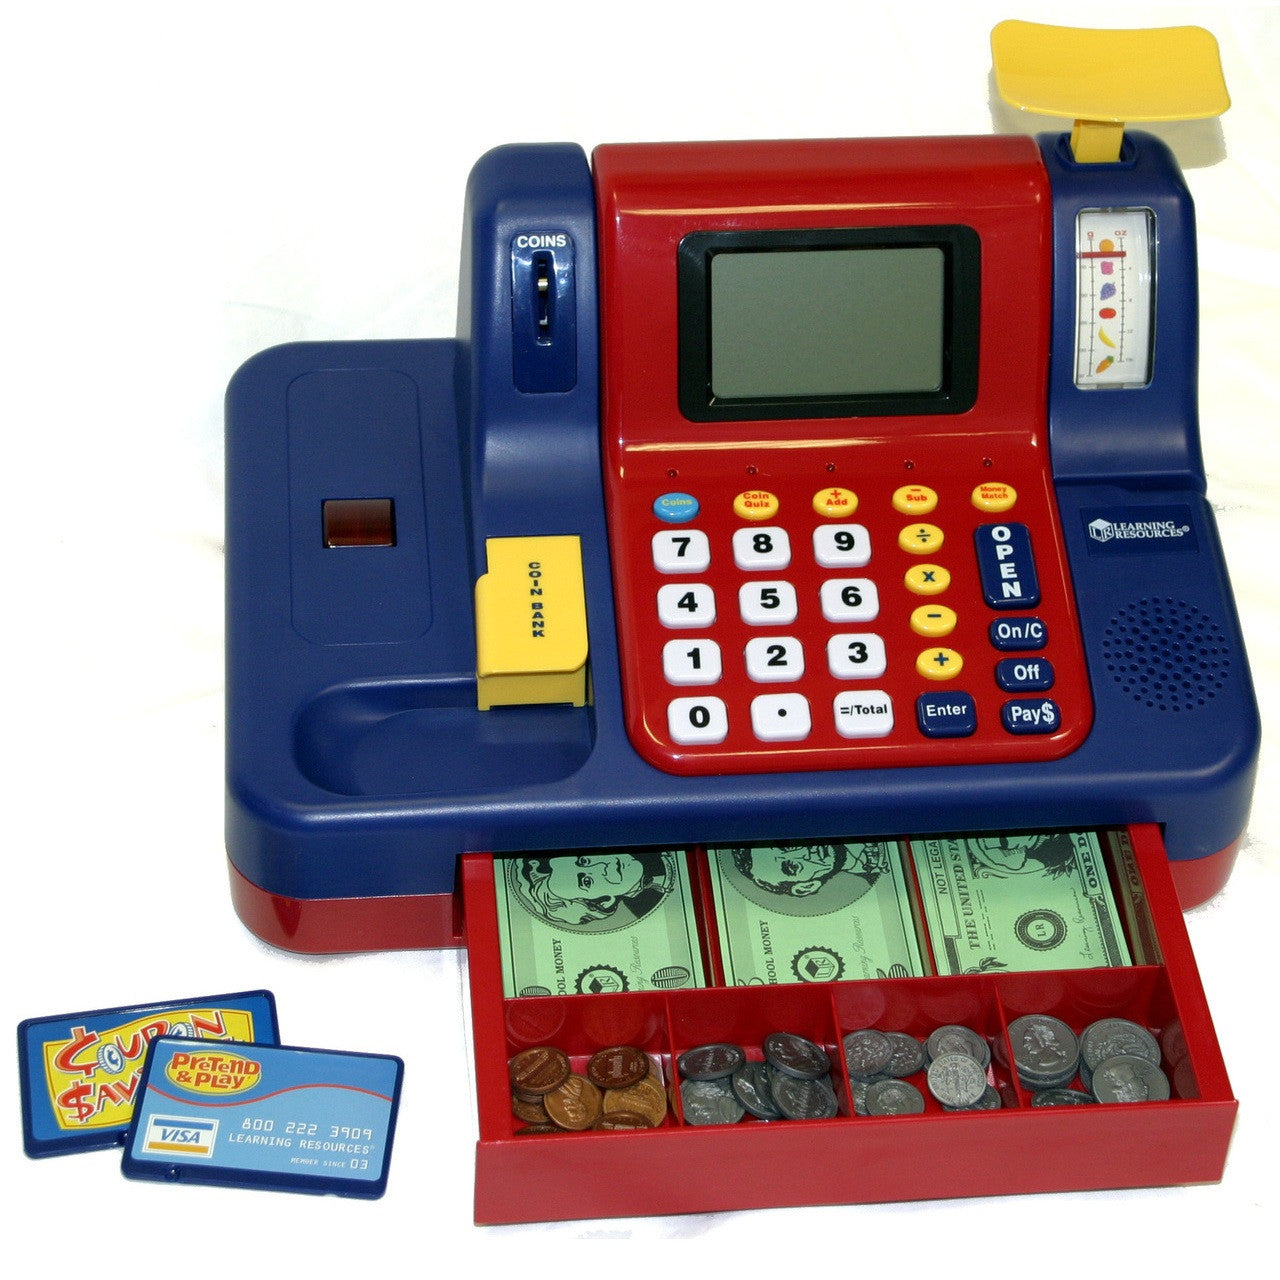 Pretend & Play Canadian Teaching Cash Register - Toybox Toy Jungle